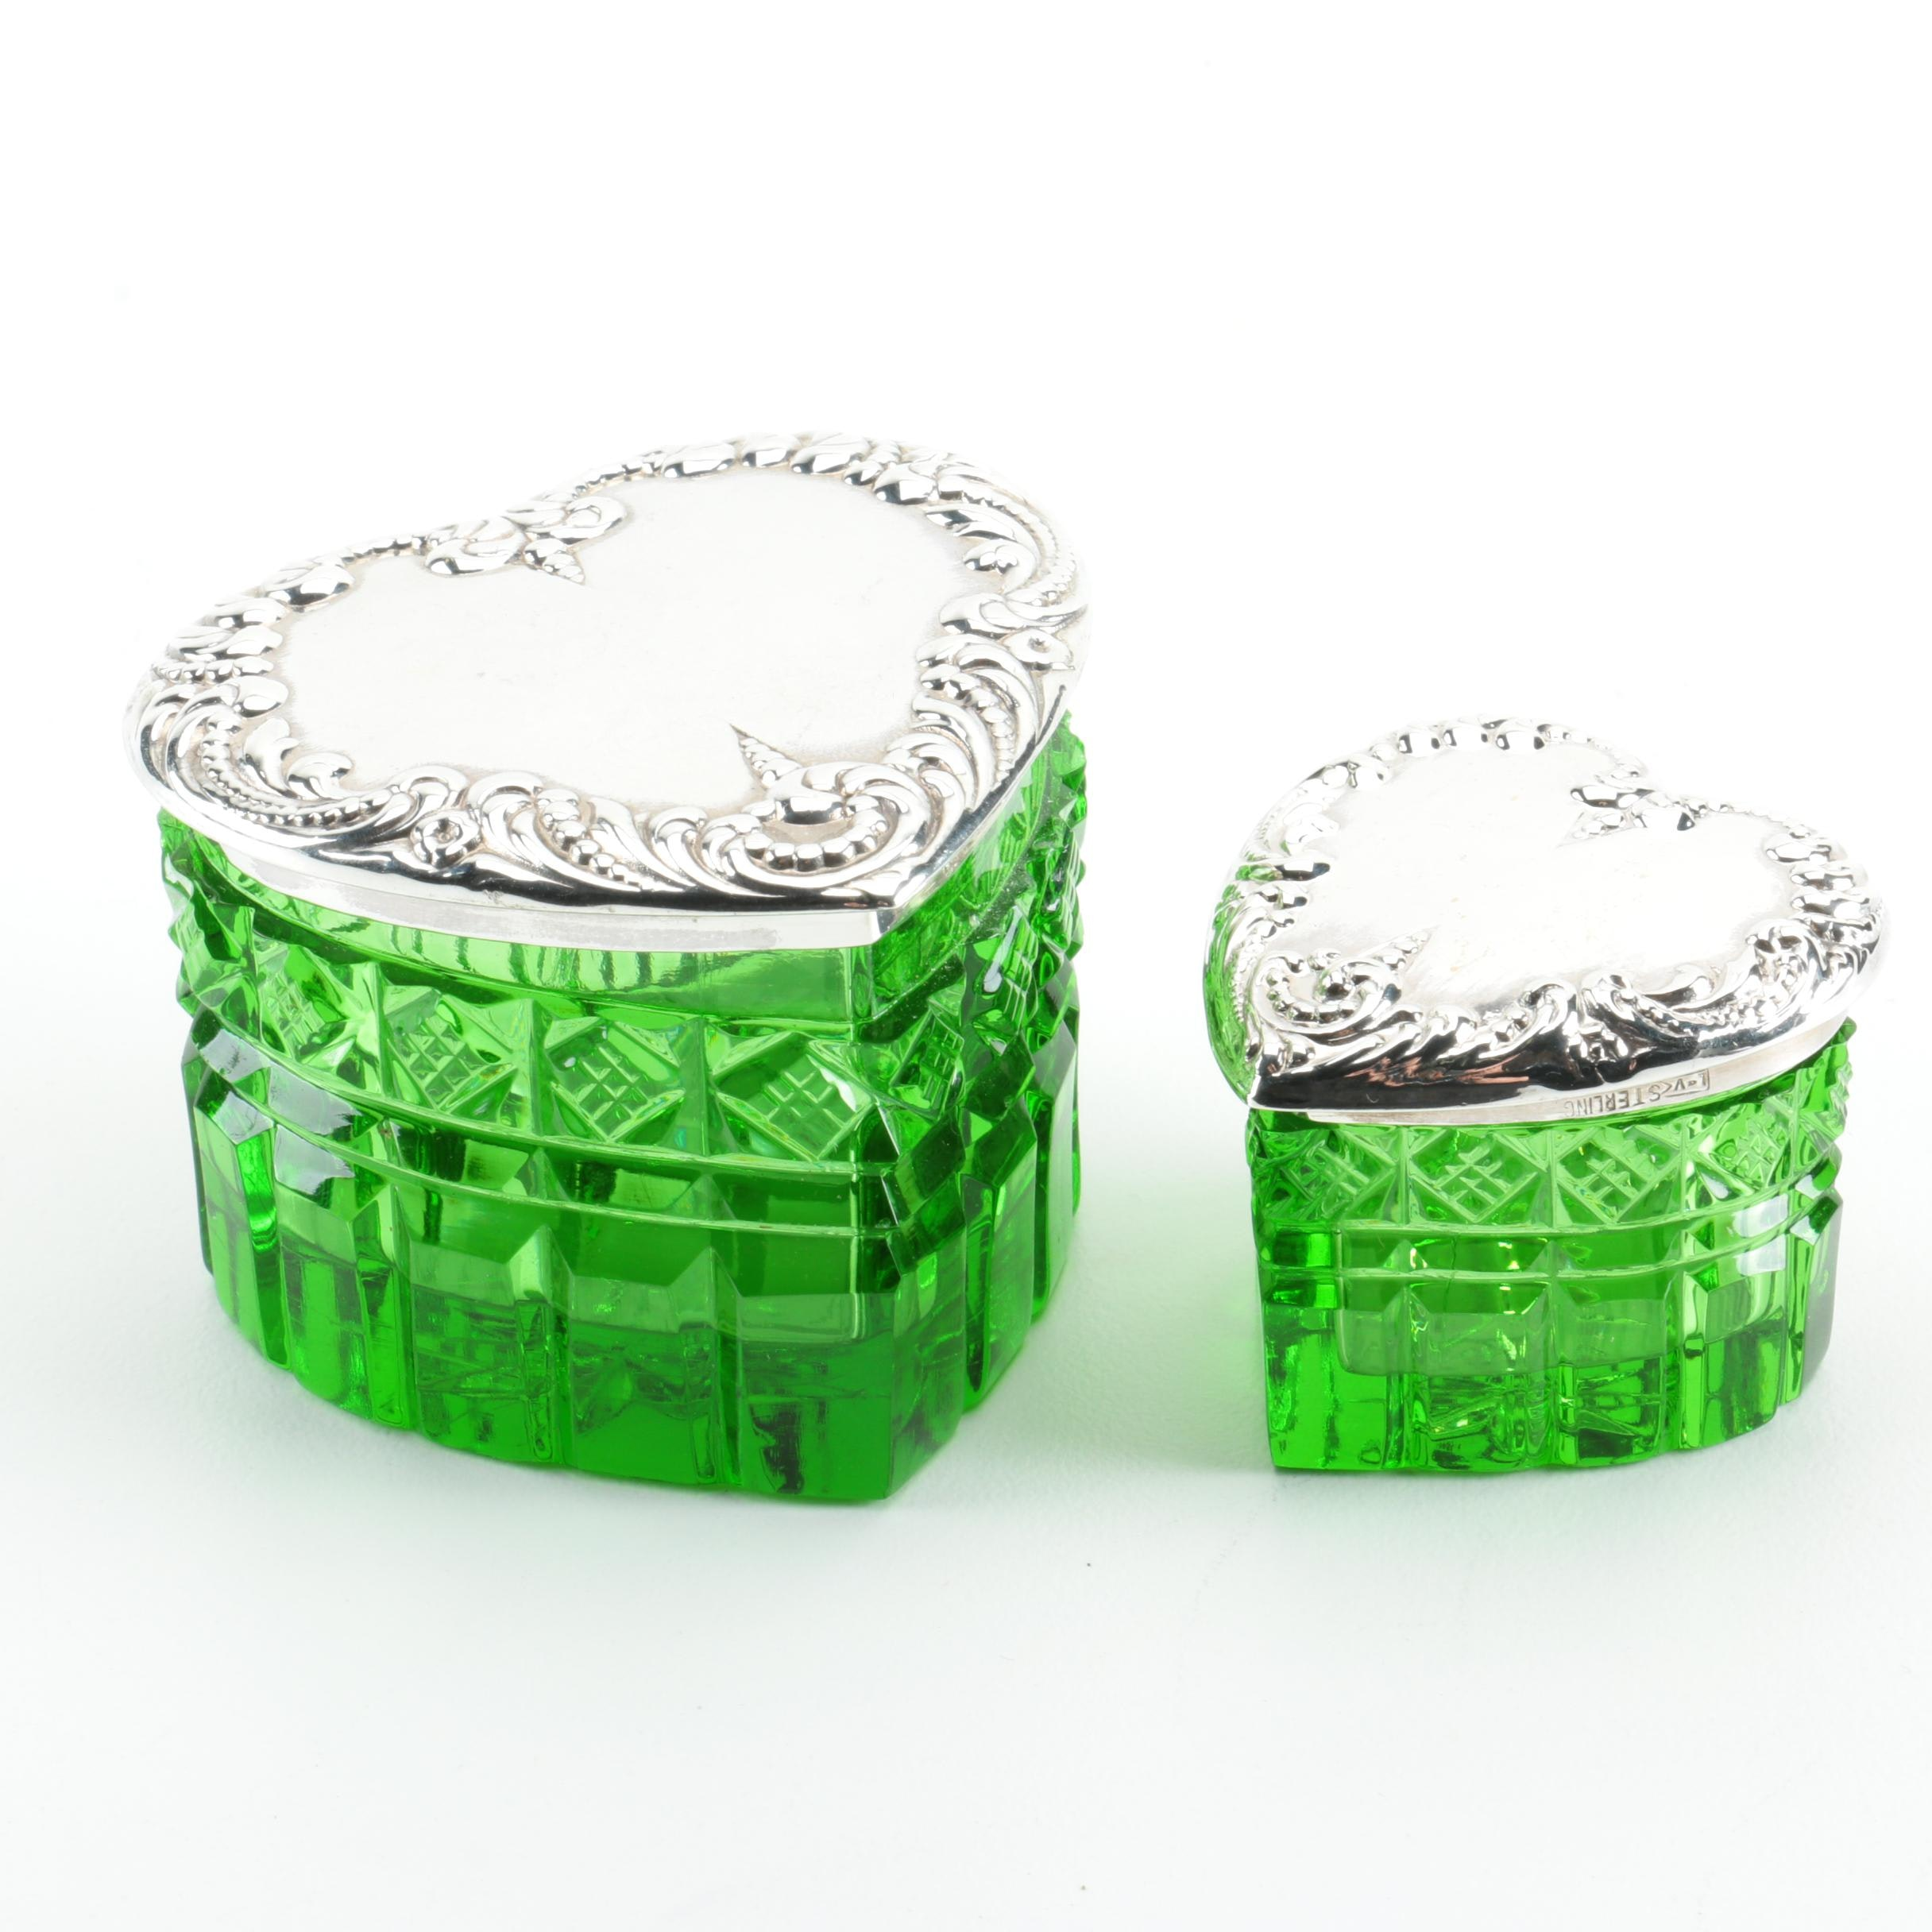 Heart-Shaped Sterling Silver and Emerald Green Crystal Vanity Jars